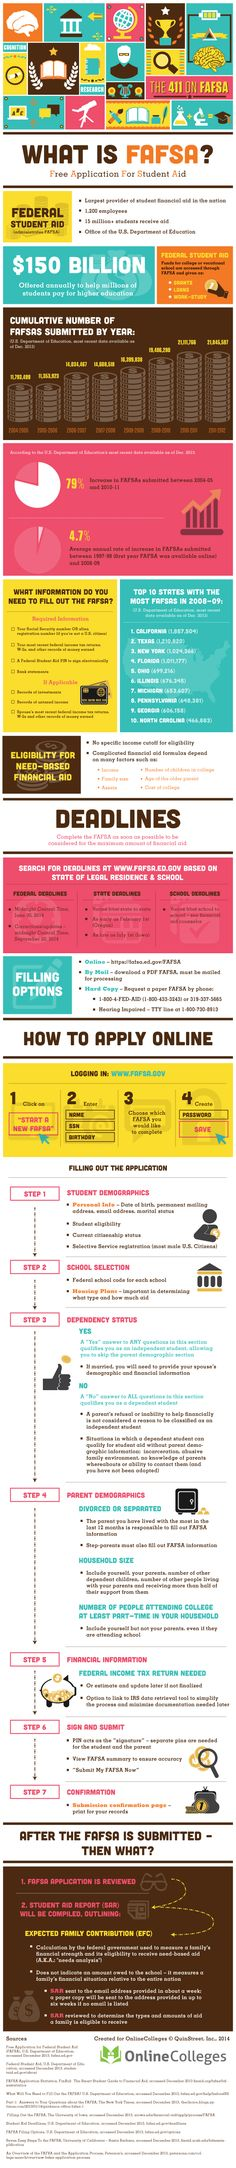 #FAFSA information #collegetips #students - financial aid information for college students - an infographic that details everything you need to know about the FAFSA